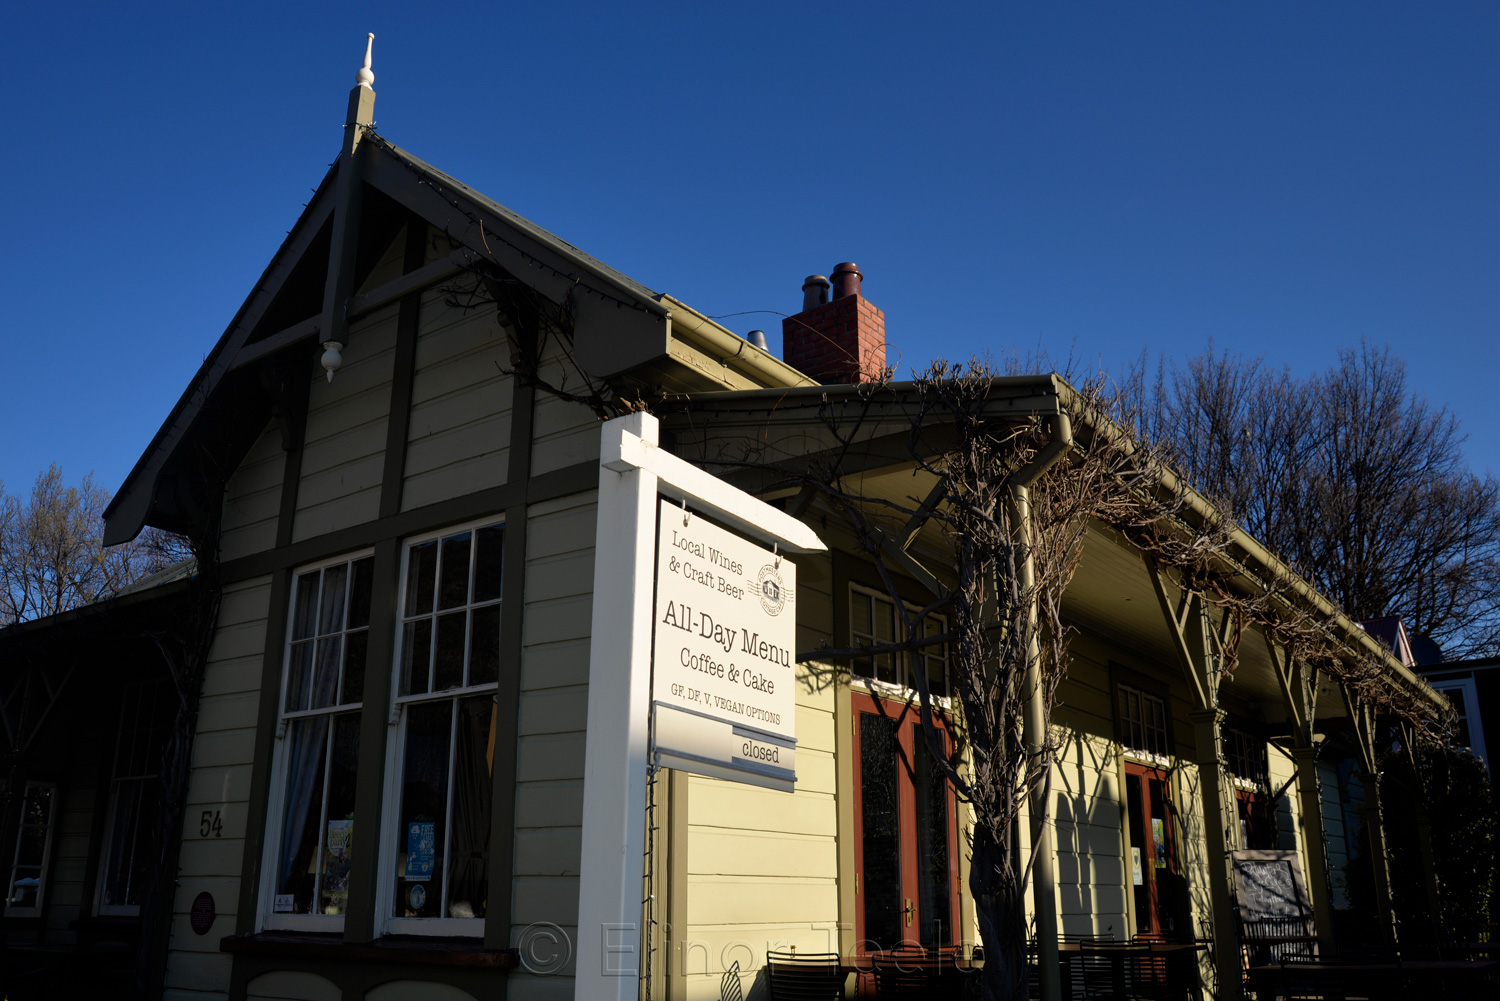 Arrowtown - Postmasters Cottage Cafe in September